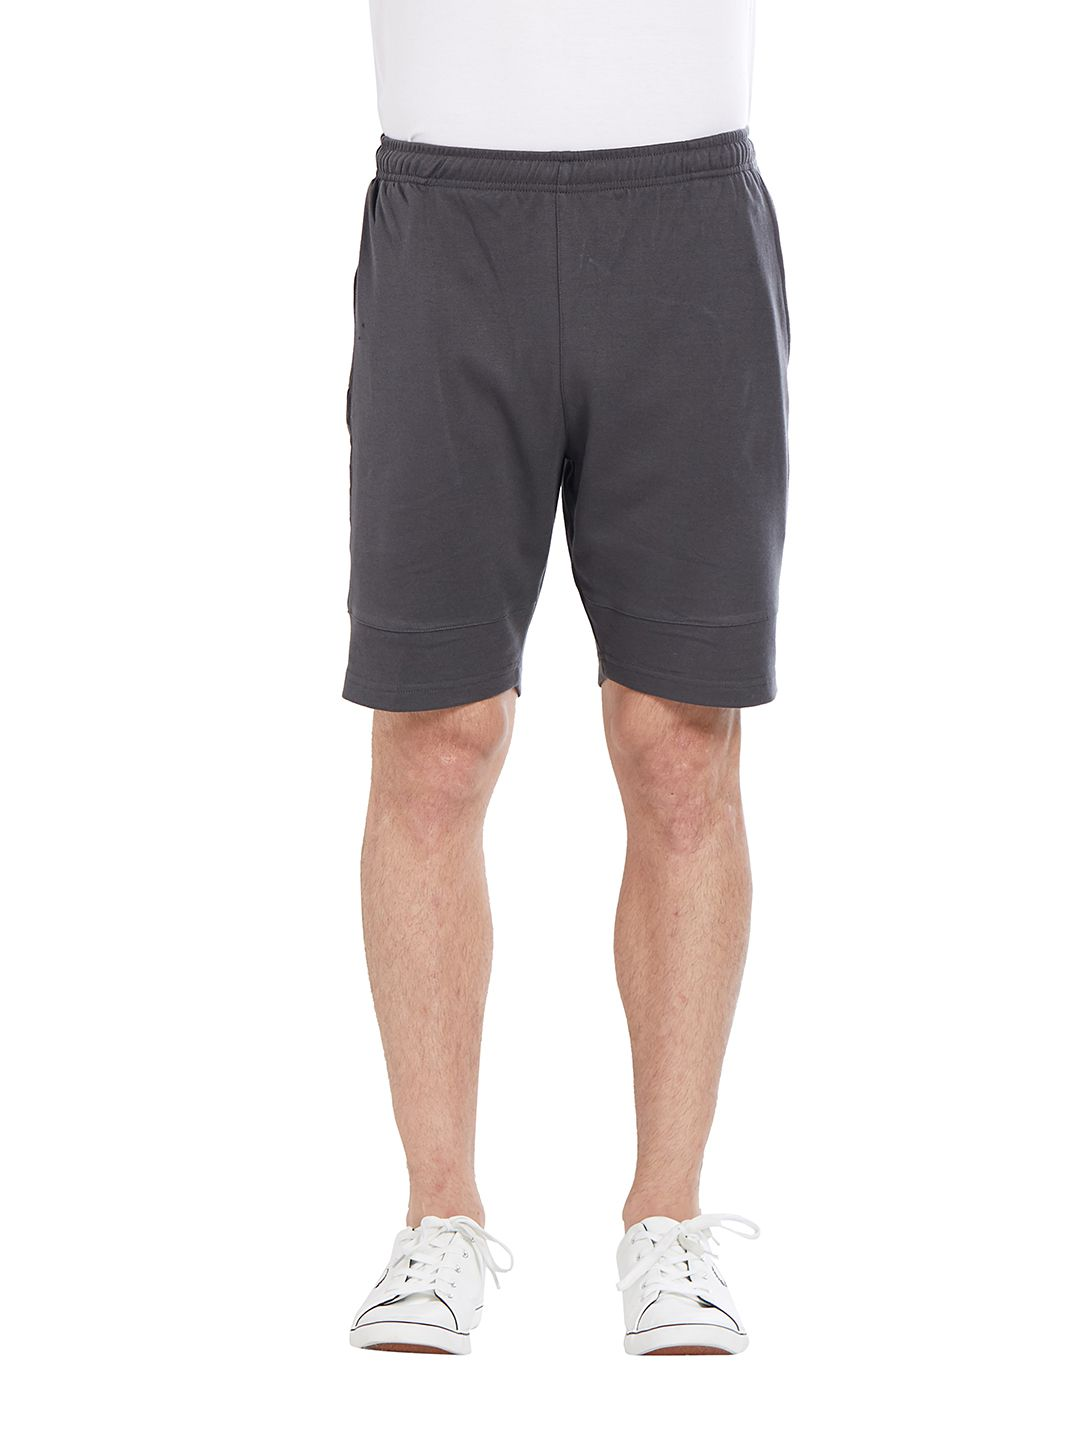 BONATY Grey Blended Cotton Solid  Shorts For Men